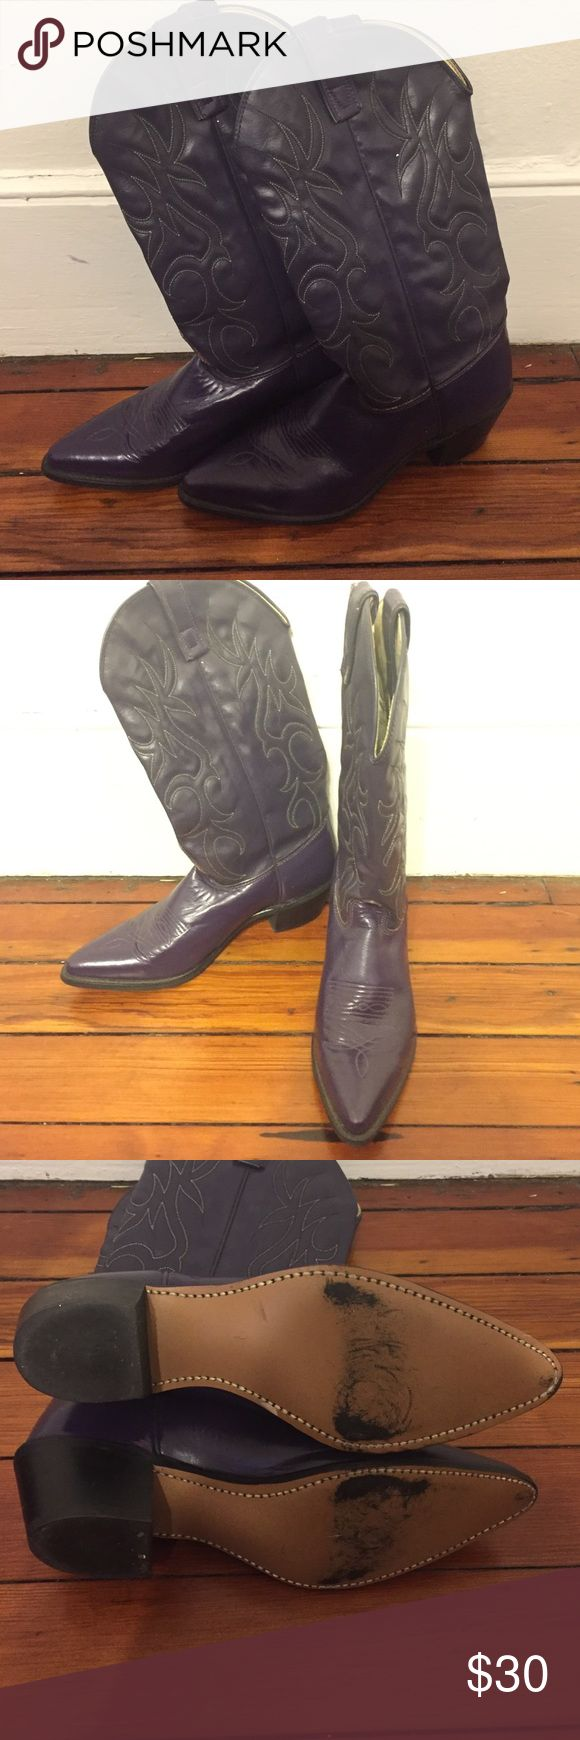 1980s Vintage Cowboy Boots Deep purple cowboy boots, size 8.5, but run very narrow. Gently worn, soles are barely scuffed. Small heel. Sheplers Shoes Heeled Boots